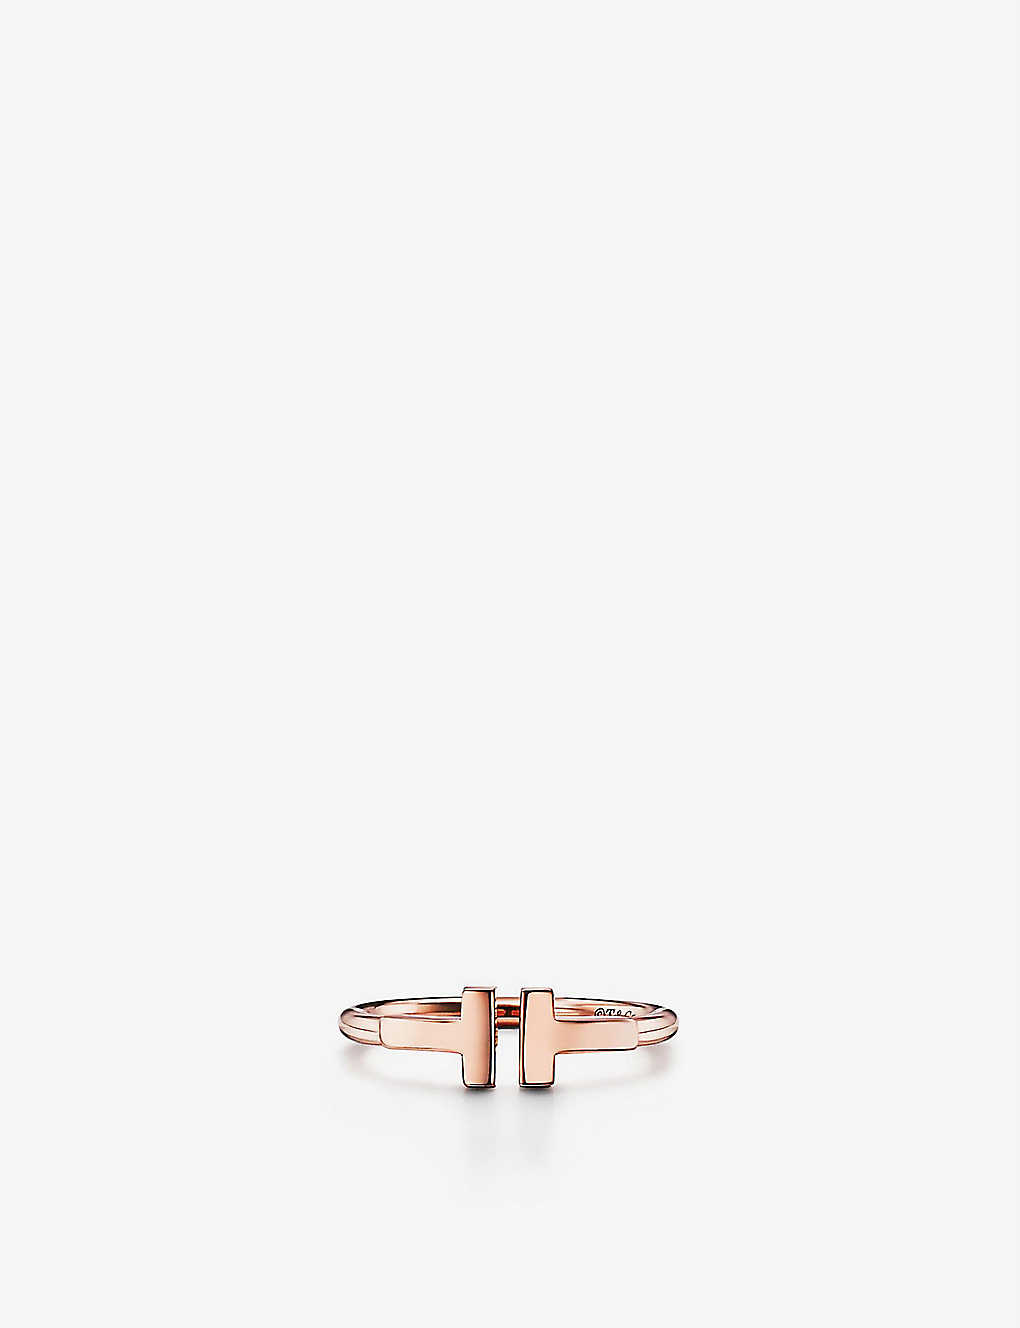 581fd04a9 TIFFANY & CO - Tiffany T 18ct rose-gold wire ring | Selfridges.com